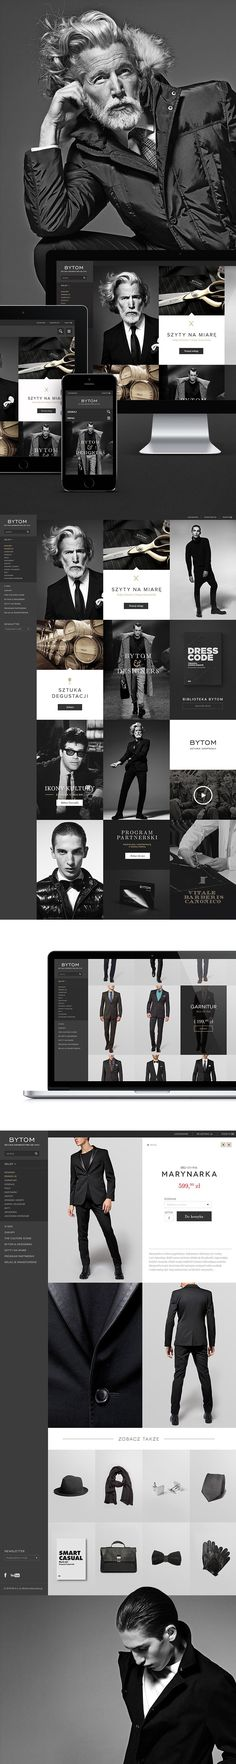 Showing the latest in men's fashions for big metro players. Web Design Examples, Creative Web Design, Web Ui Design, Best Web Design, Page Design, Website Design Layout, Web Layout, Layout Design, Webdesign Inspiration